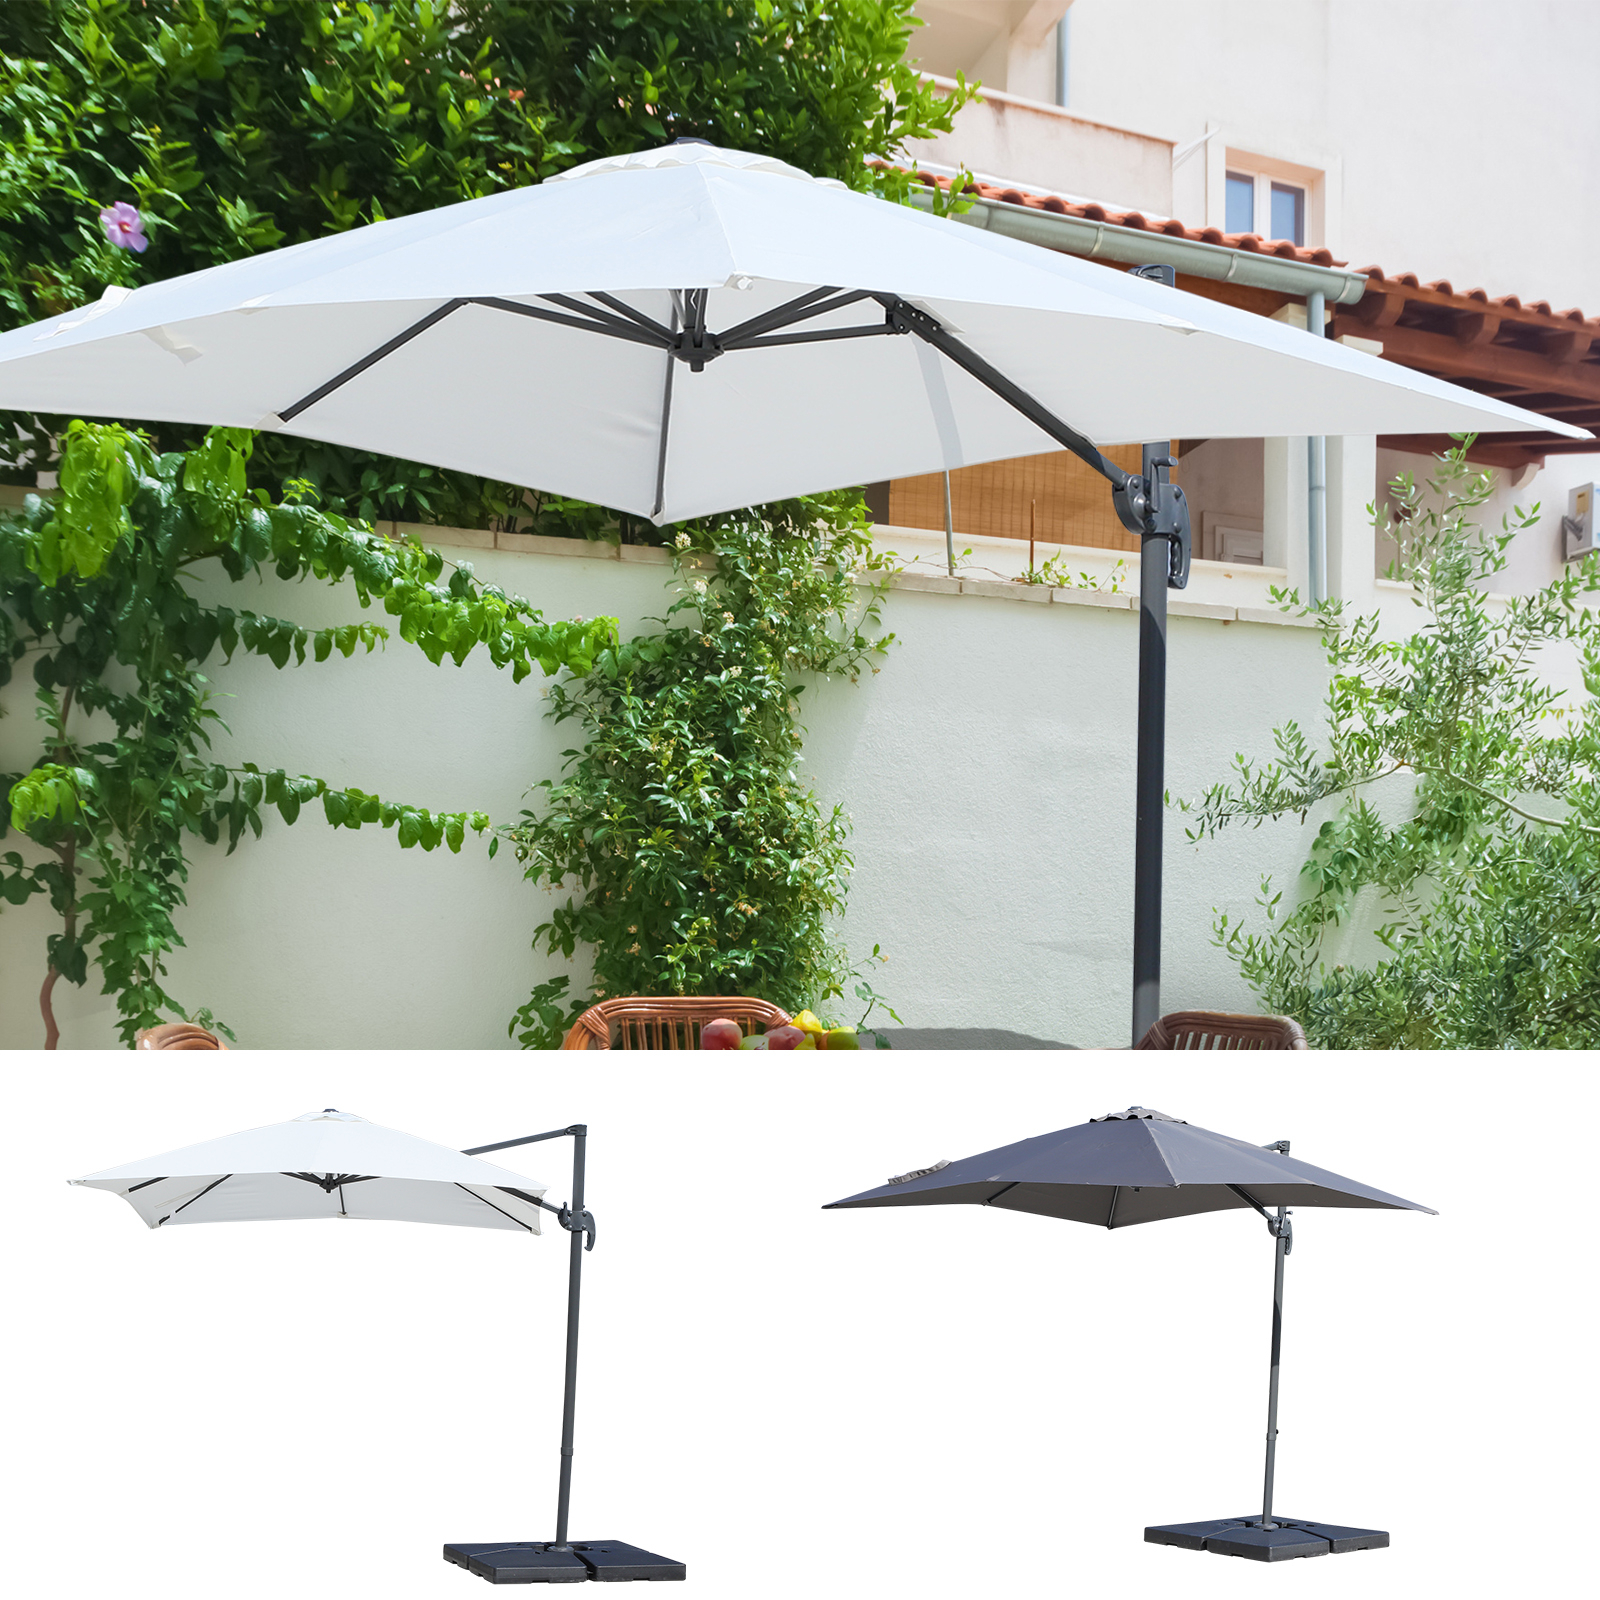 Most Up To Date Cantilever Umbrellas Regarding Details About 8'X8' Square Patio Offset Hanging Cantilever Umbrella 360°  Rotation W/ Cross (View 20 of 20)